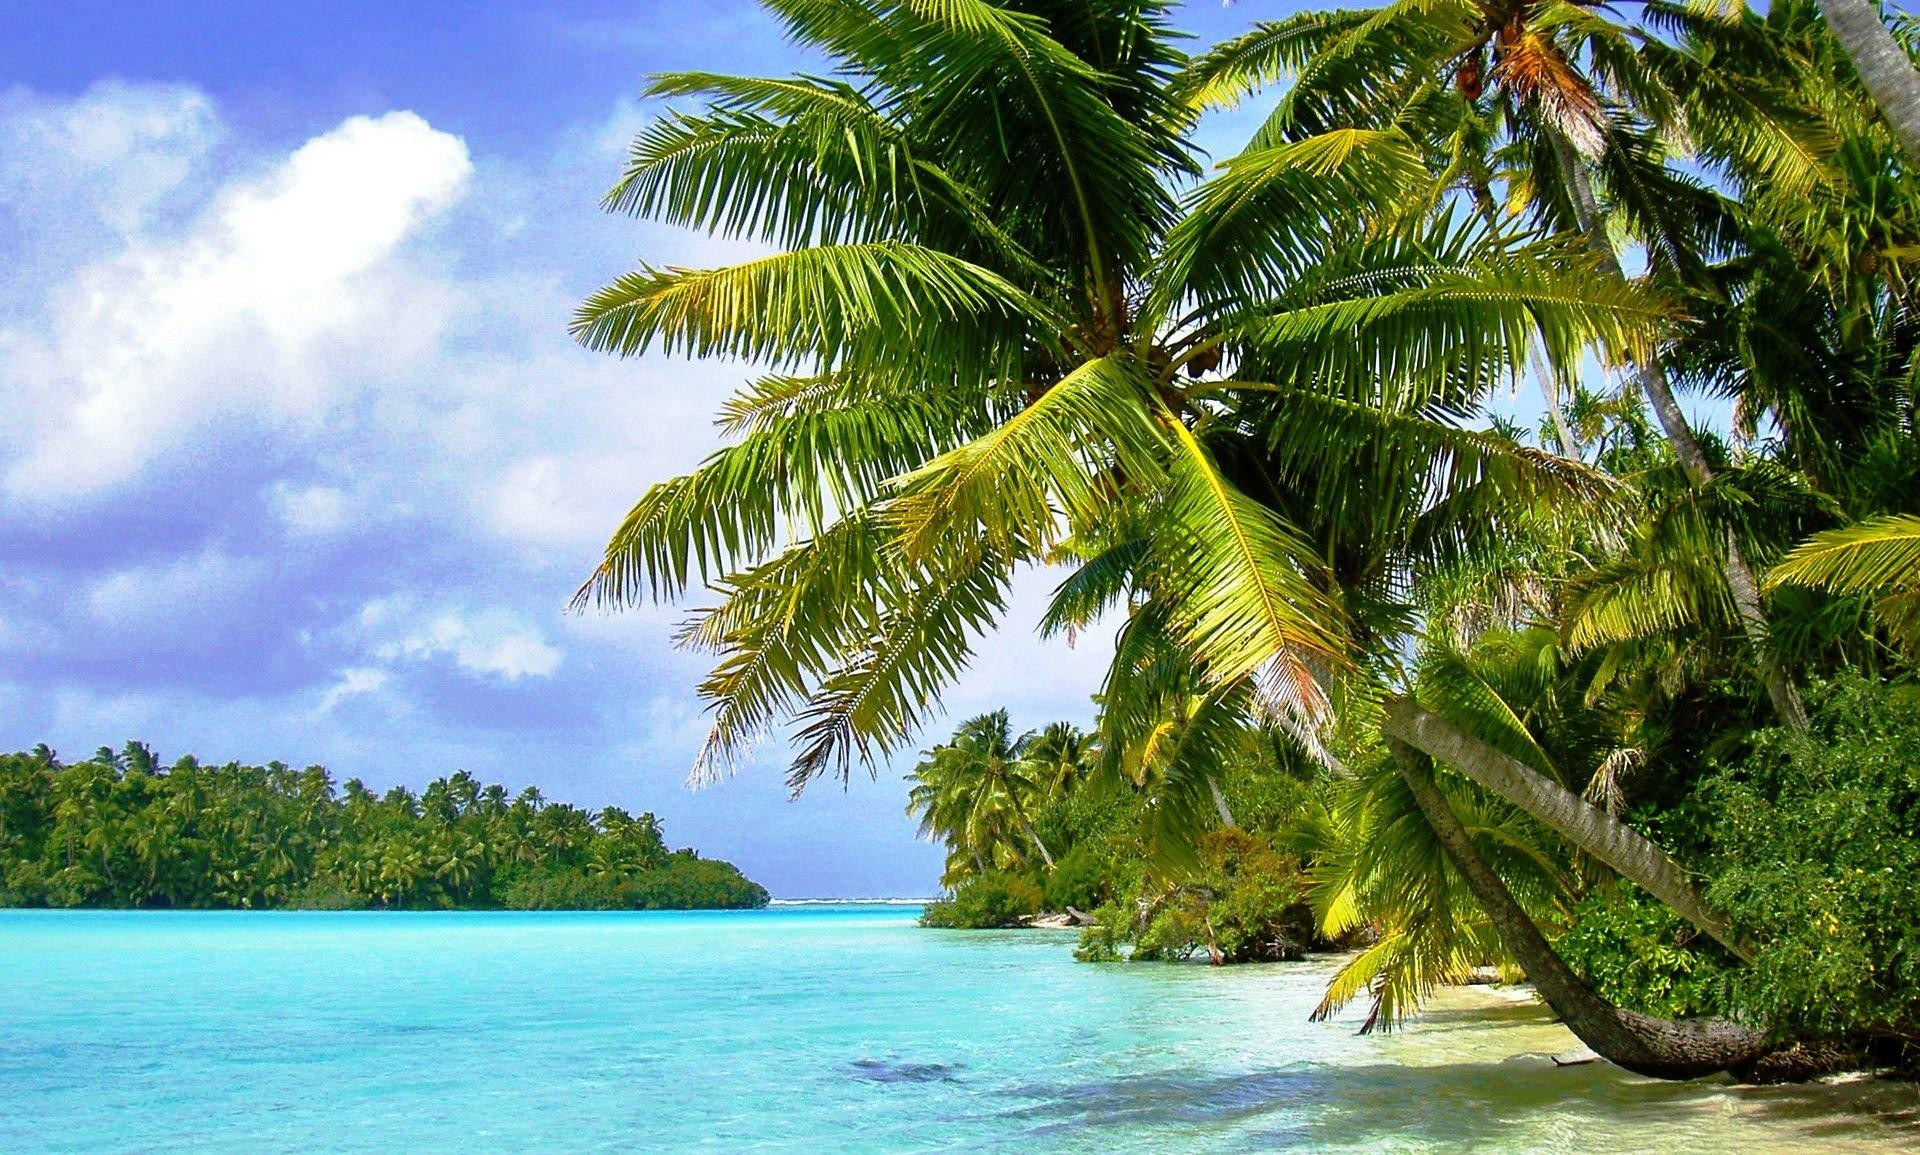 tropical island background 57 images